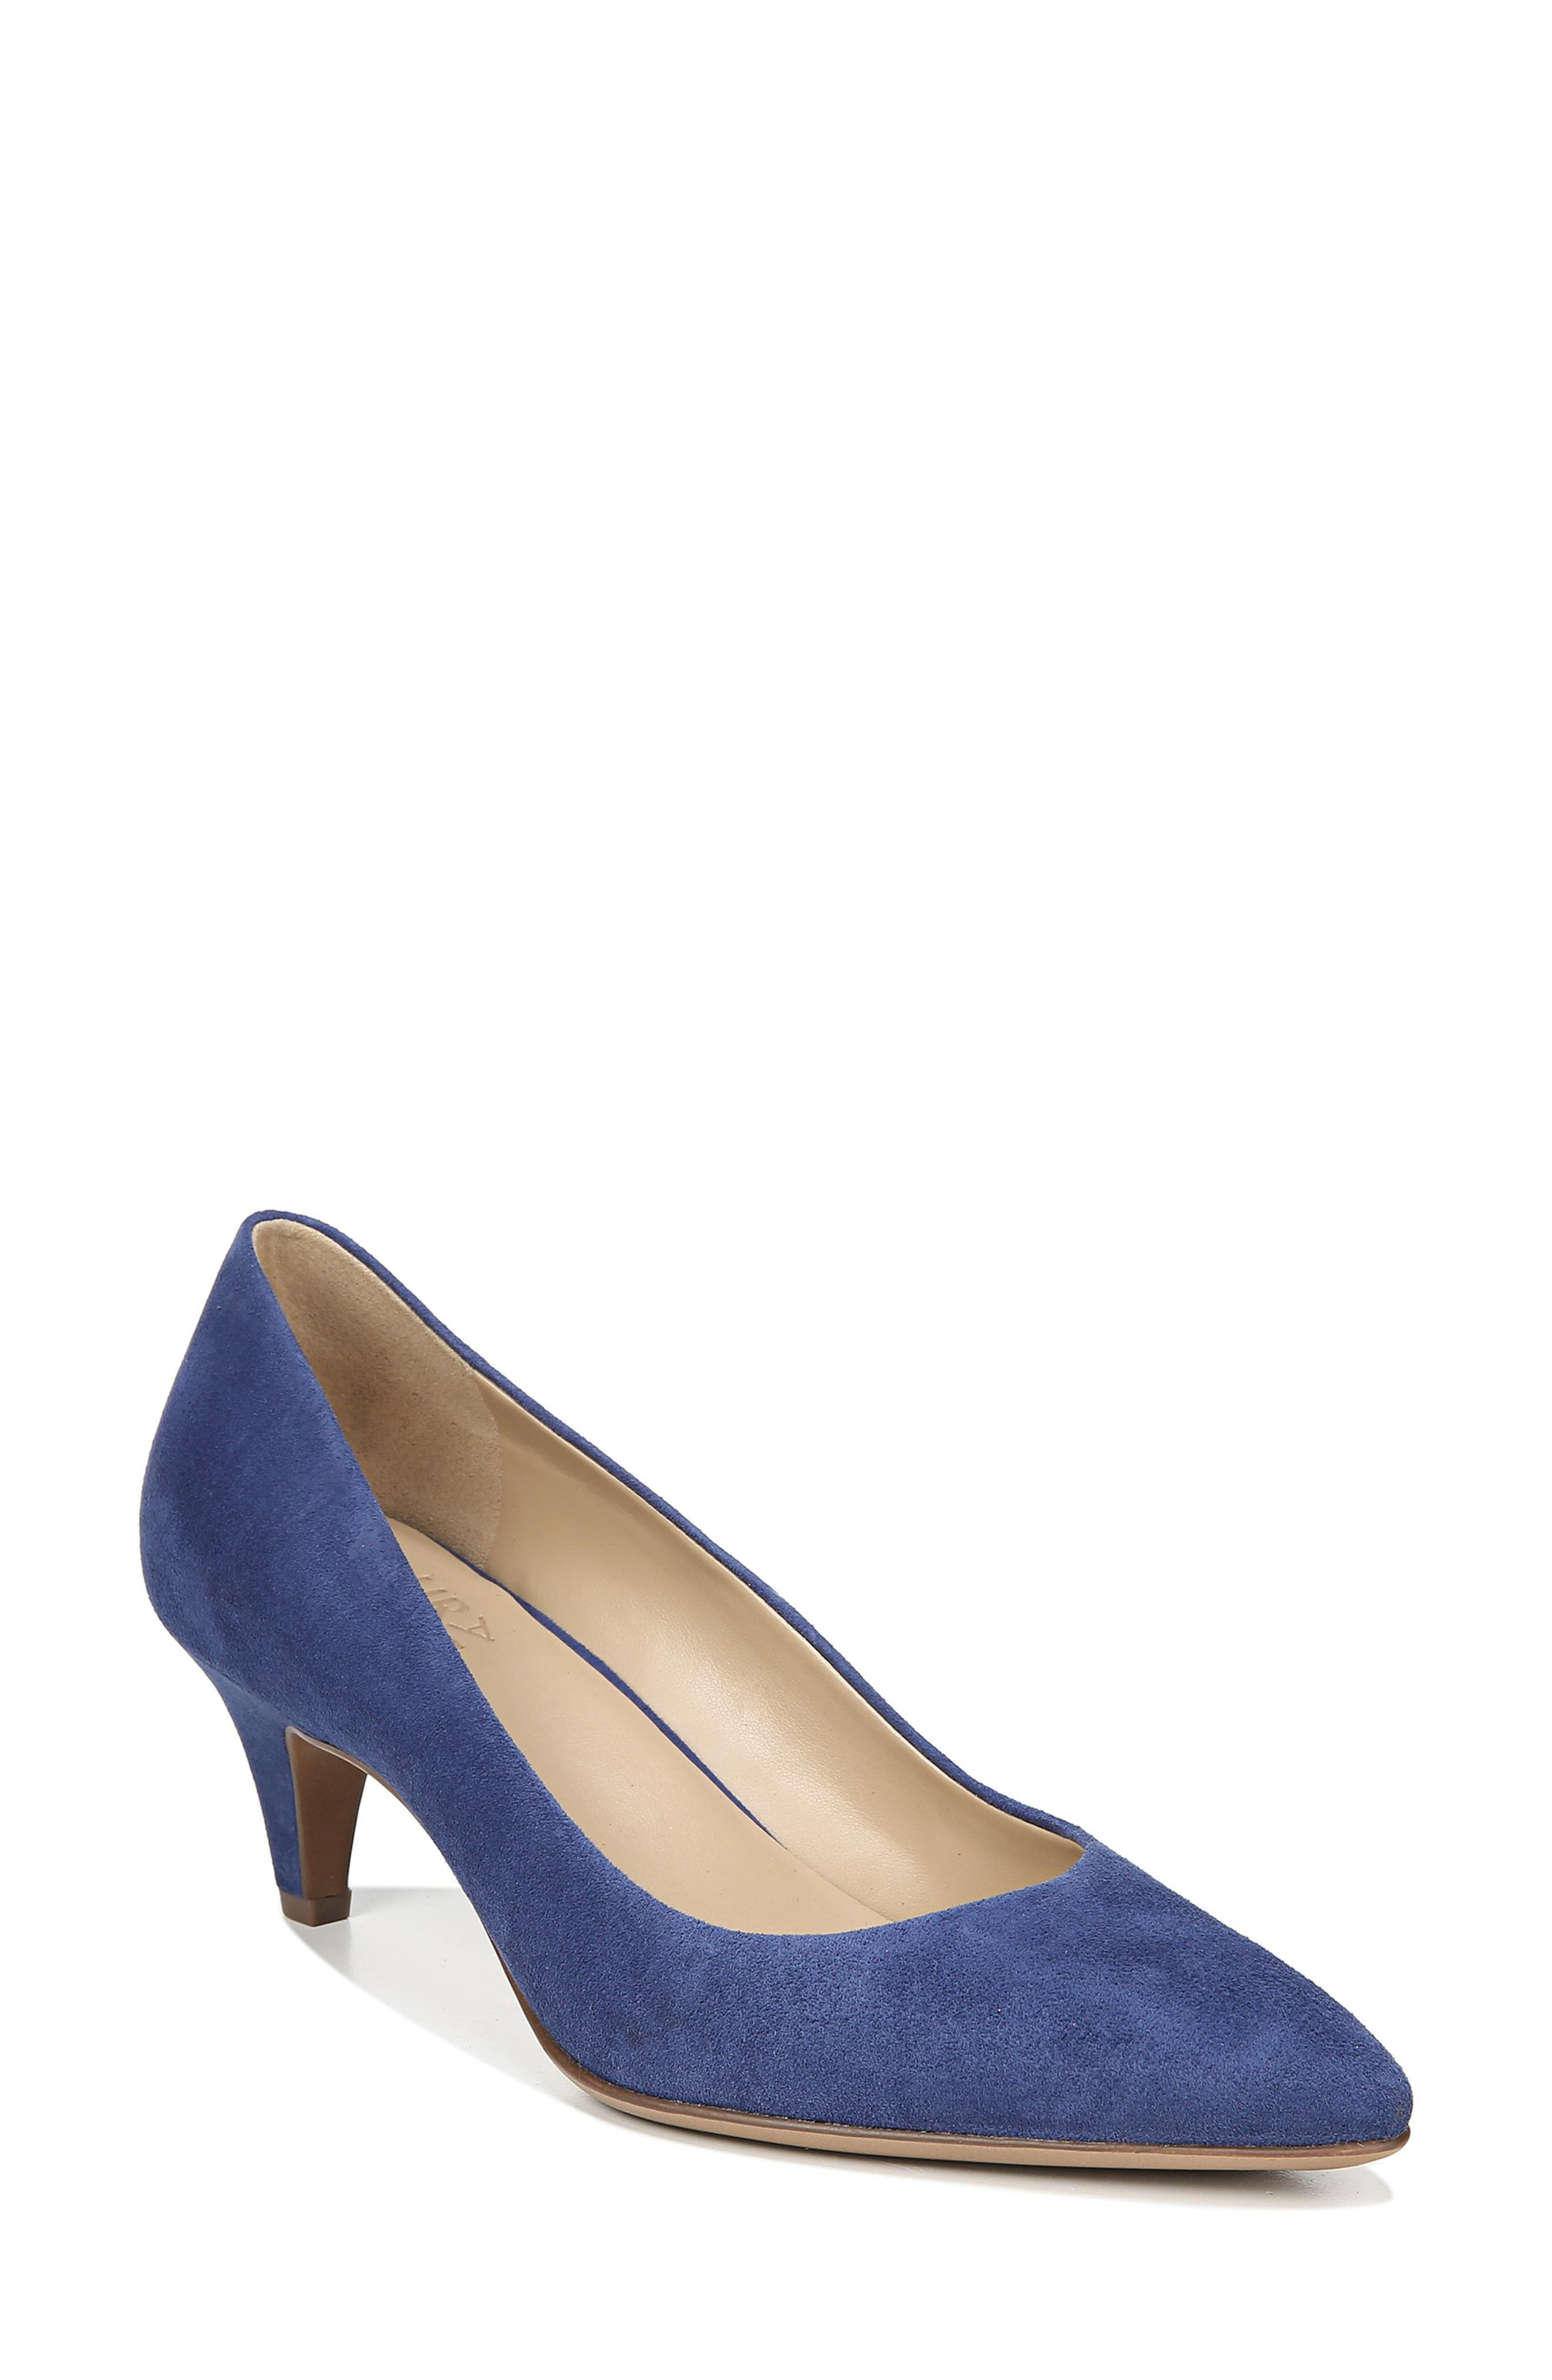 Naturalizer Beverly Pump, Blue